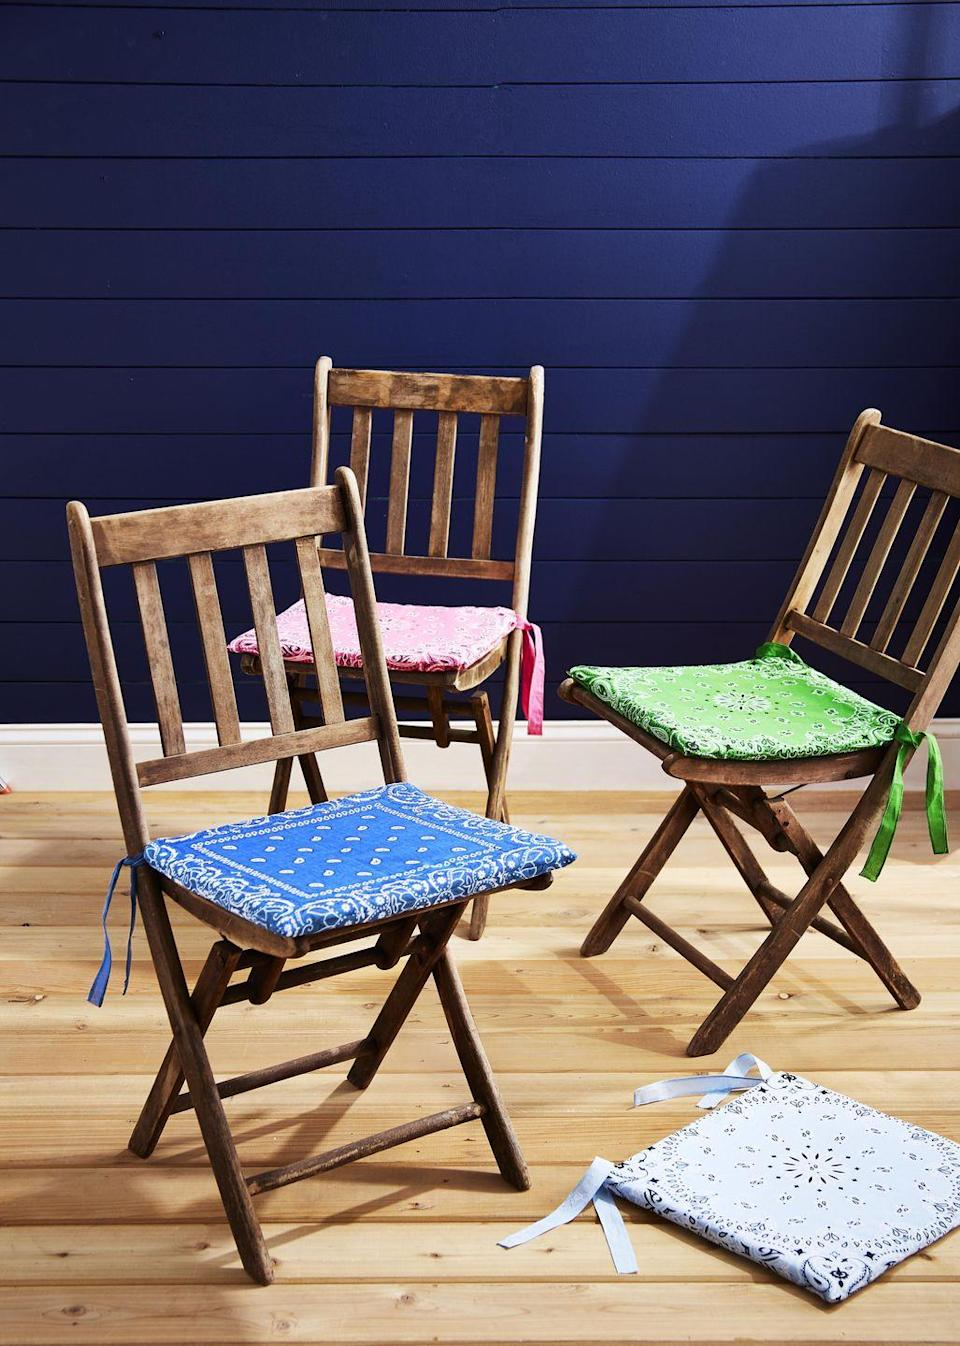 <p>Refresh your dining room or outdoor chairs by adding pops of color with these DIY bandana chair cushions.<strong><br></strong></p><p><strong>To make: </strong>Measure the seat of the chairs you wish to cover, and cut 1-inch-thick upholstery foam to size. Trim two bandanas to same size plus 1/2 inch all around to accommodate cushion's thickness. Sew bandanas together, leaving an opening large enough to slip foam through. Turn inside out, insert foam, and sew opening closed. Sew ribbon or strips of bandana to back corners for tying to chairs.<br></p>